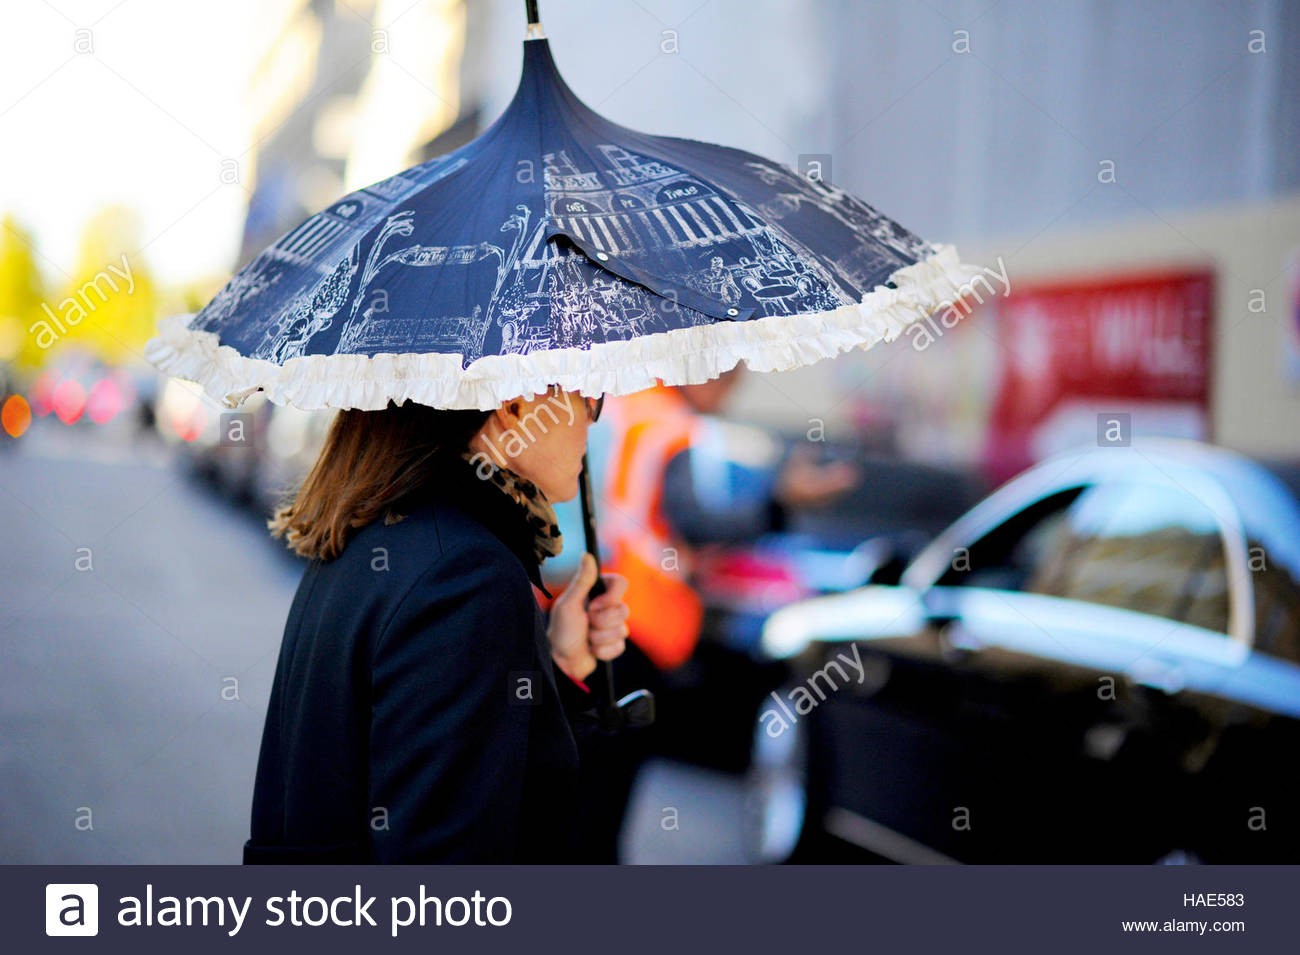 Woman with parasol, After Louis Vuitton at Place Vendome, SS17 FW16 Street Style Paris. - Stock Image